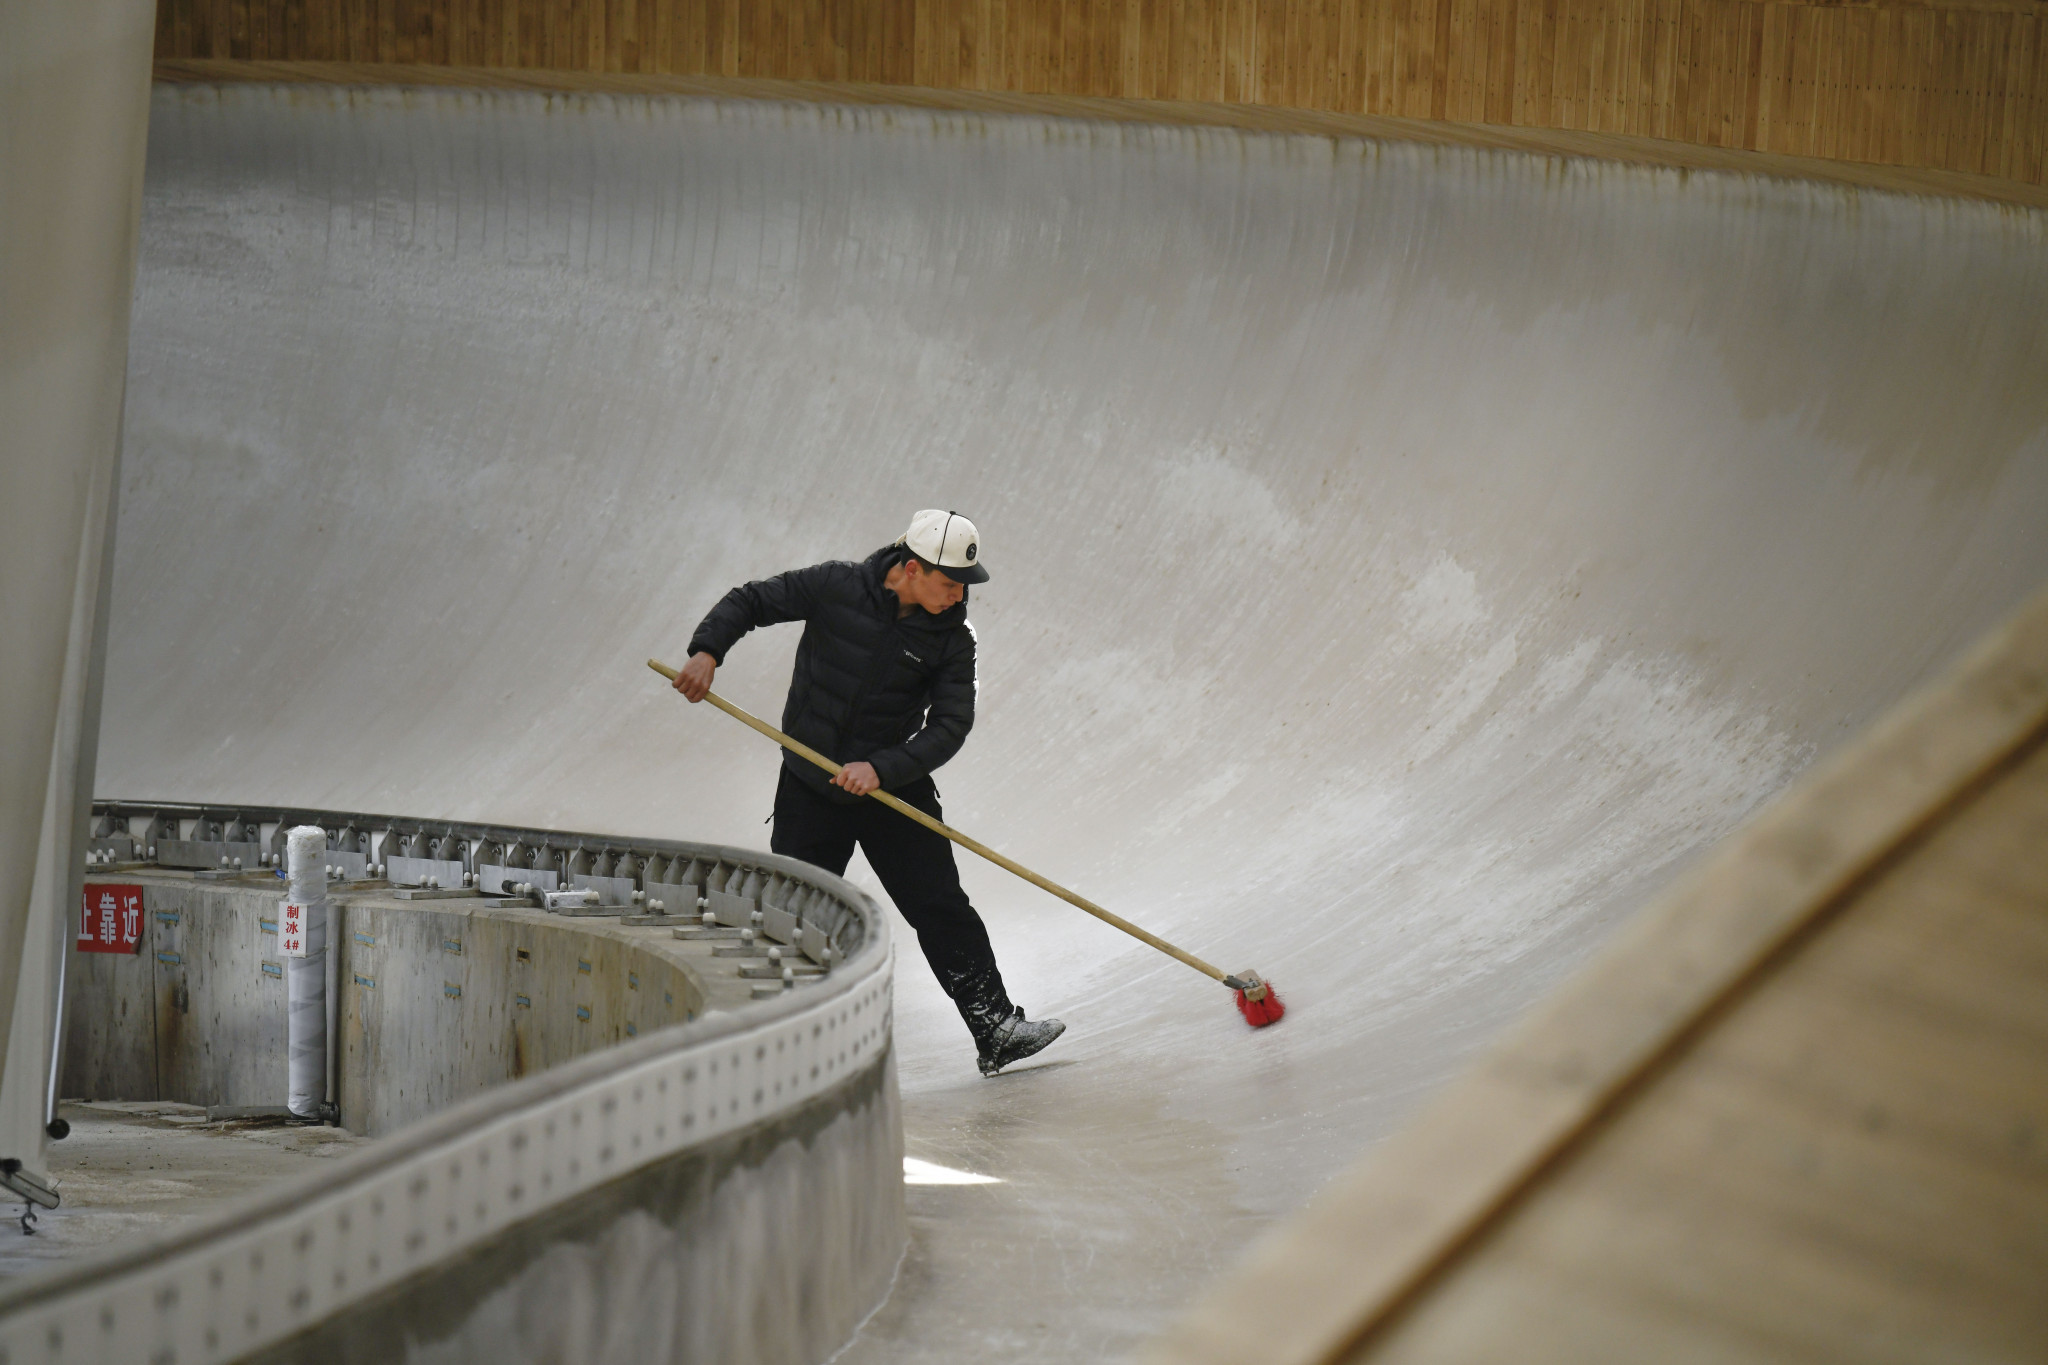 Yanqing National Sliding Center will be the luge venue for the 2022 Winter Olympics ©Getty Images